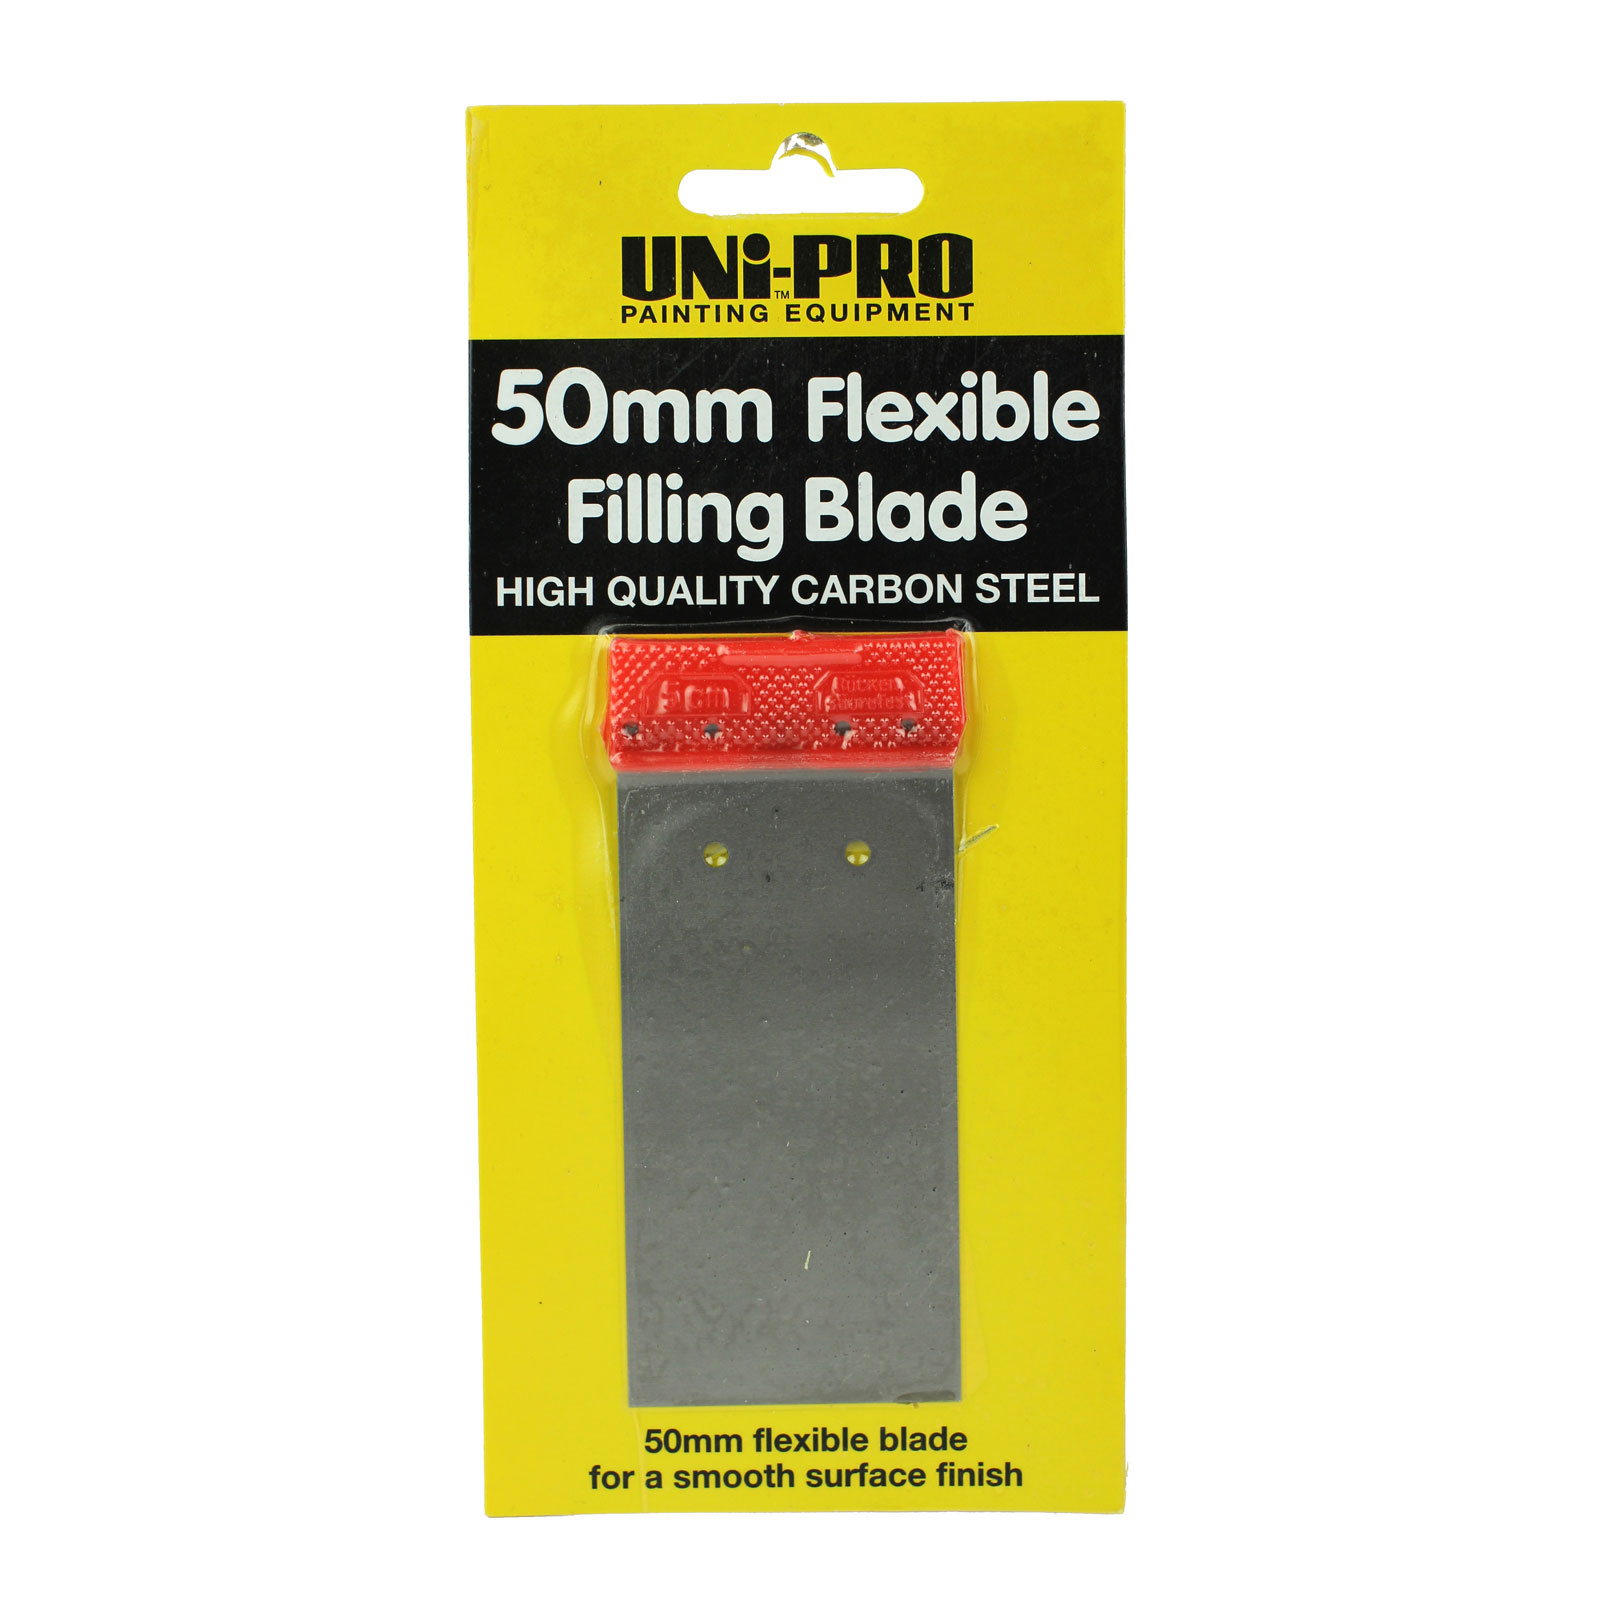 UNi-PRO Flexible Filling Blades